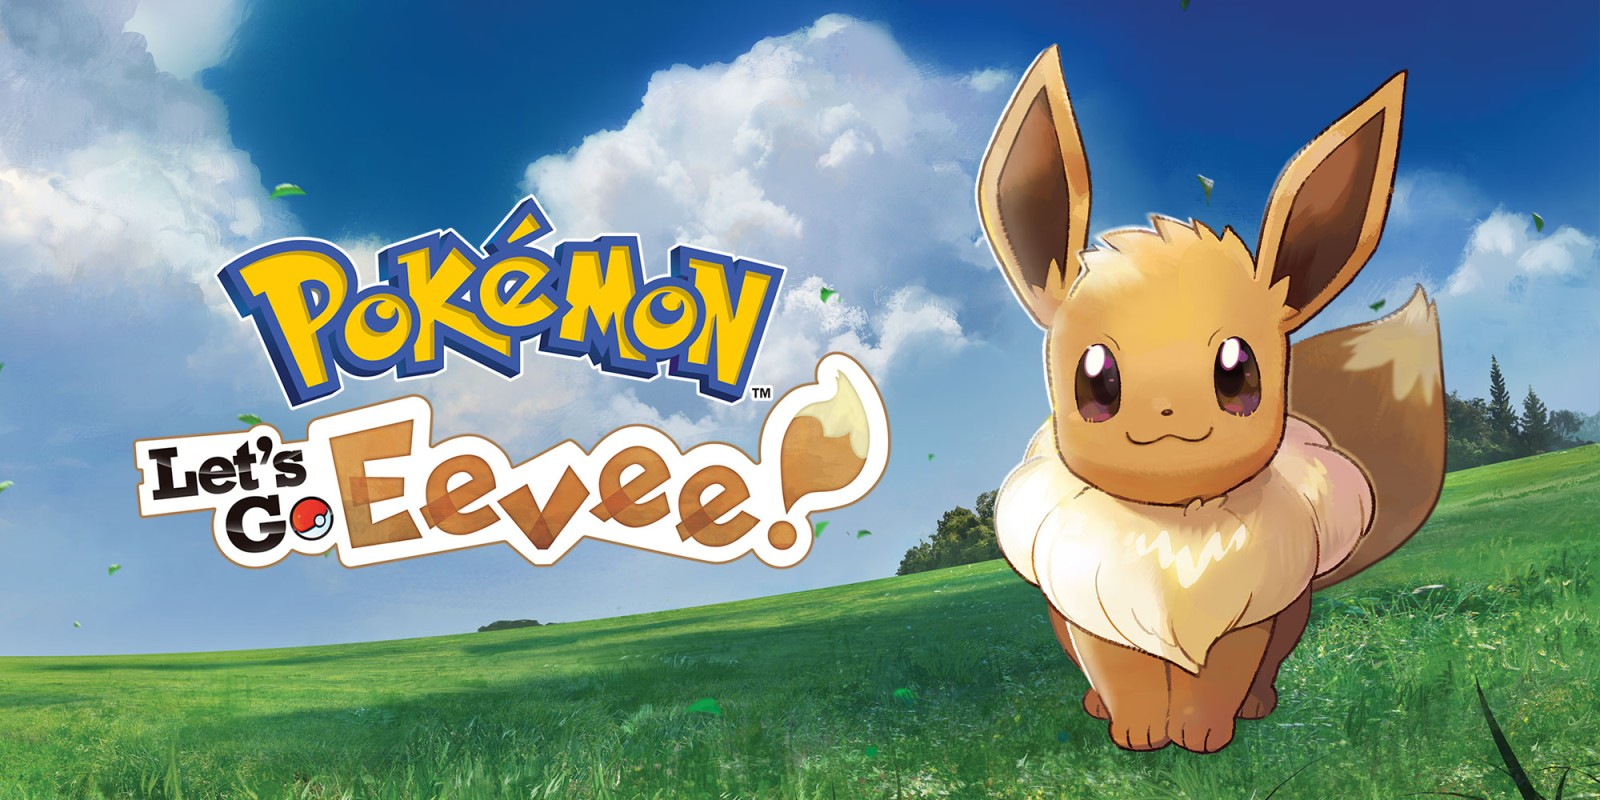 Which version of Pokemon Let's Go will you buy? | Pokemon Let's Go Eevee